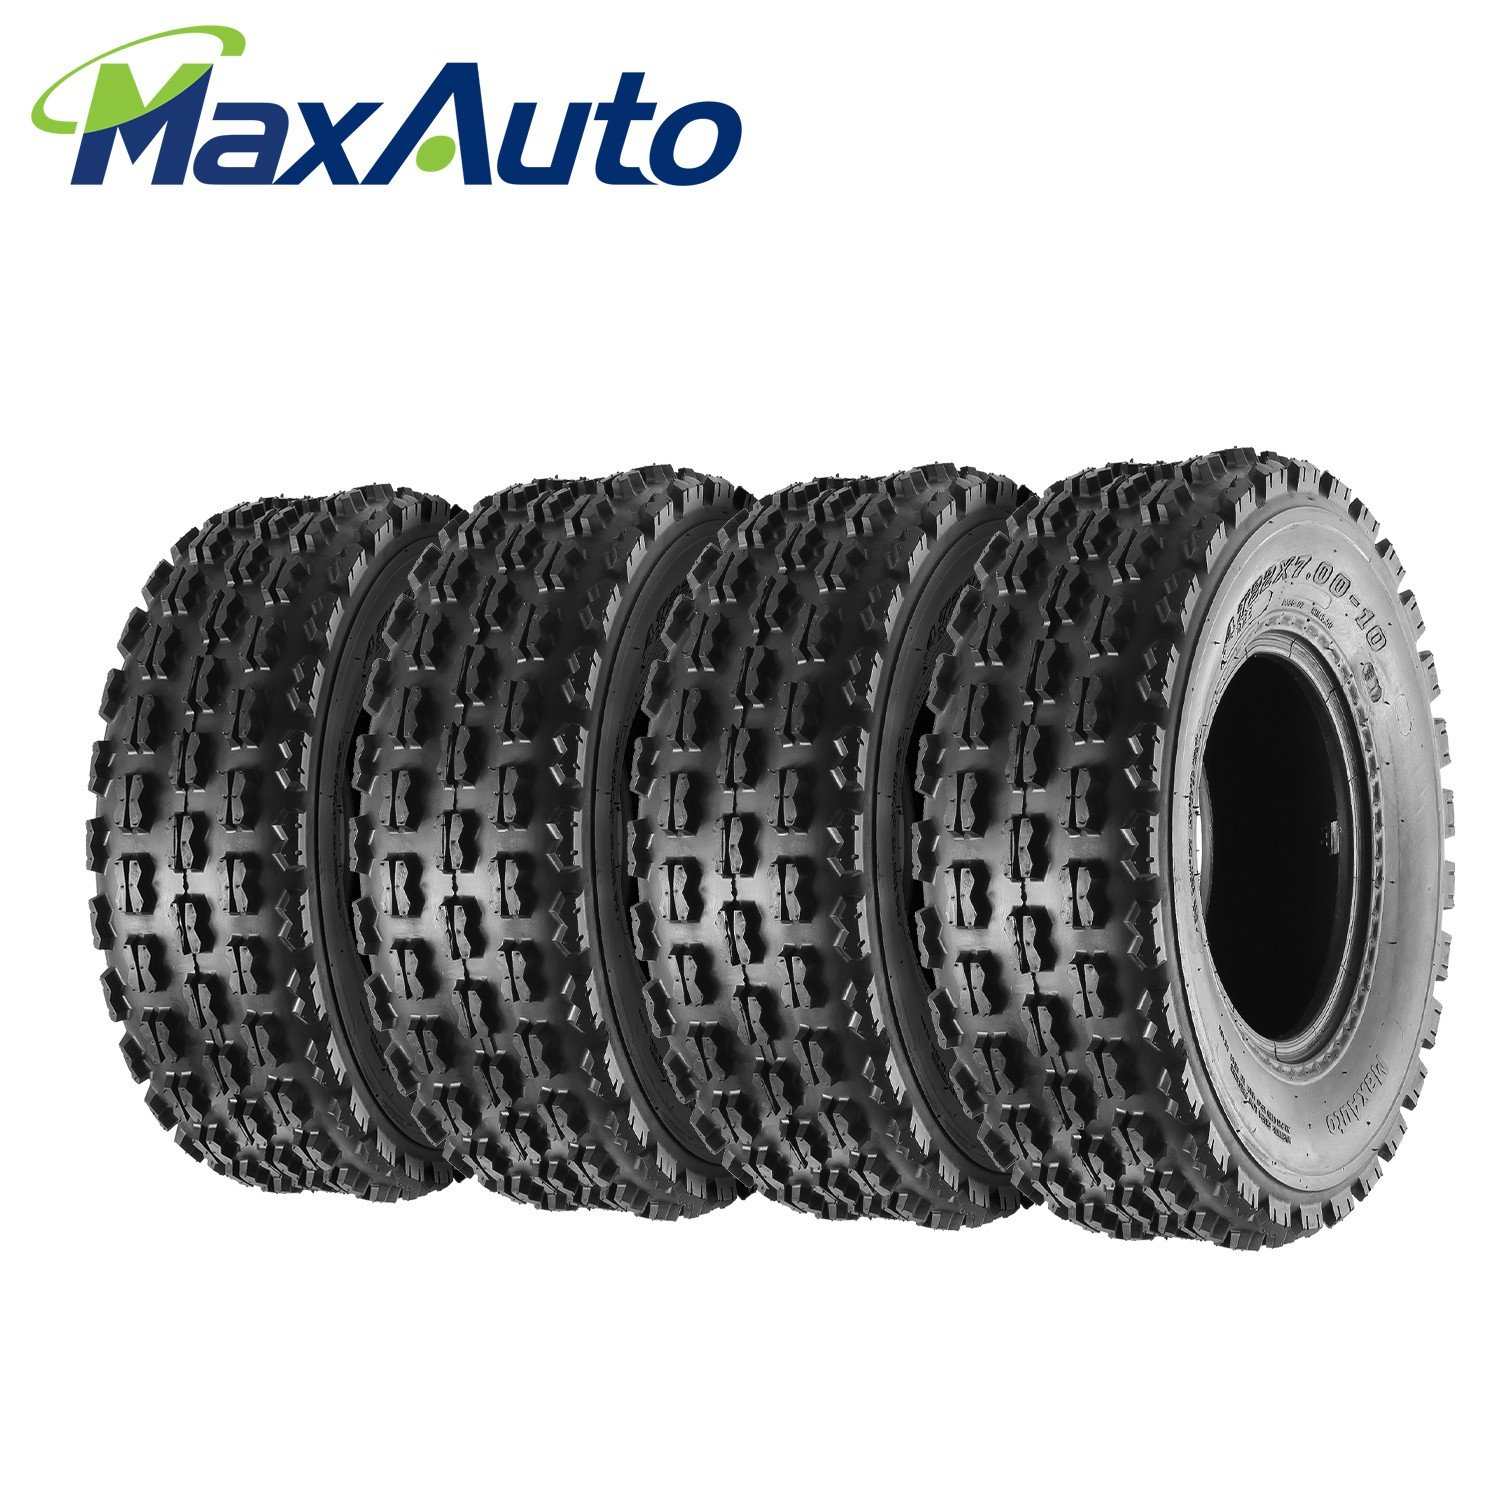 Set of 4 MaxAuto 22x7-10 Front Sport ATV Tires 22x7x10 4-Ply